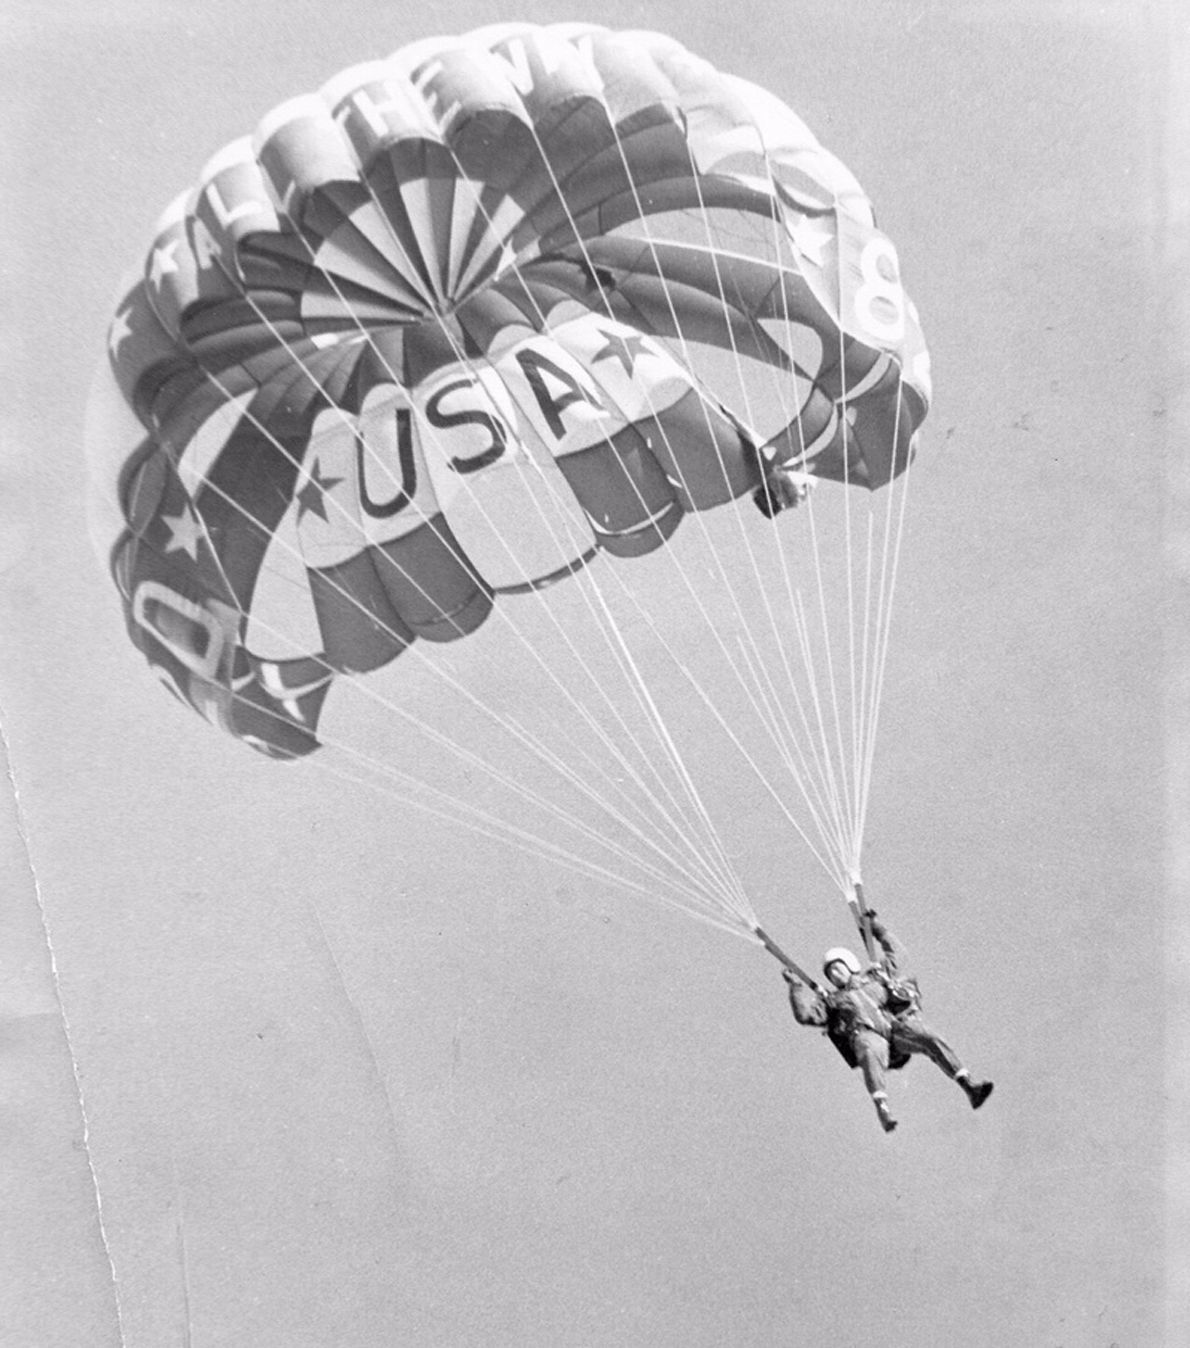 82nd Airborn Division Jump School